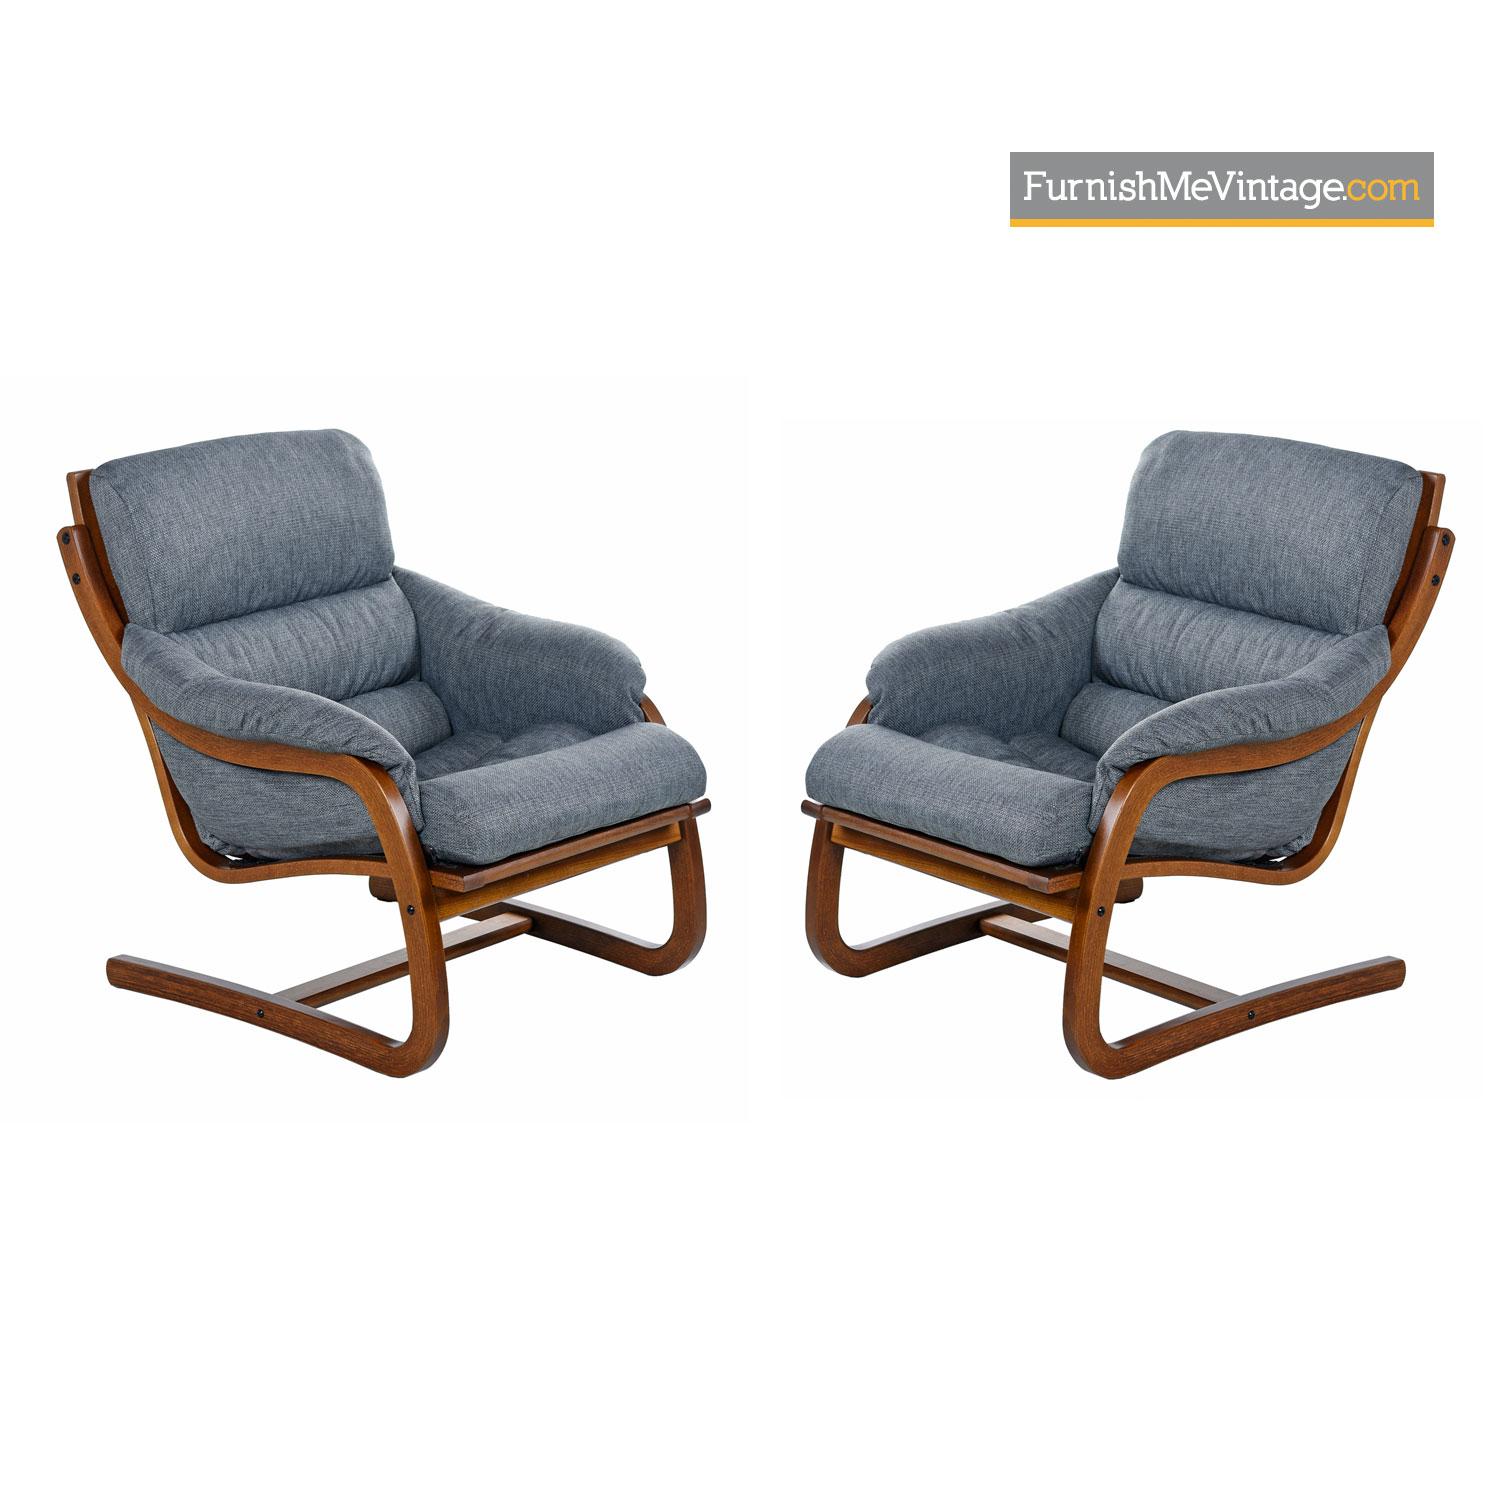 Danish Modern Lounge Chair Danish Bent Teak Cantilever Lounge Chair Set By Stouby Polster